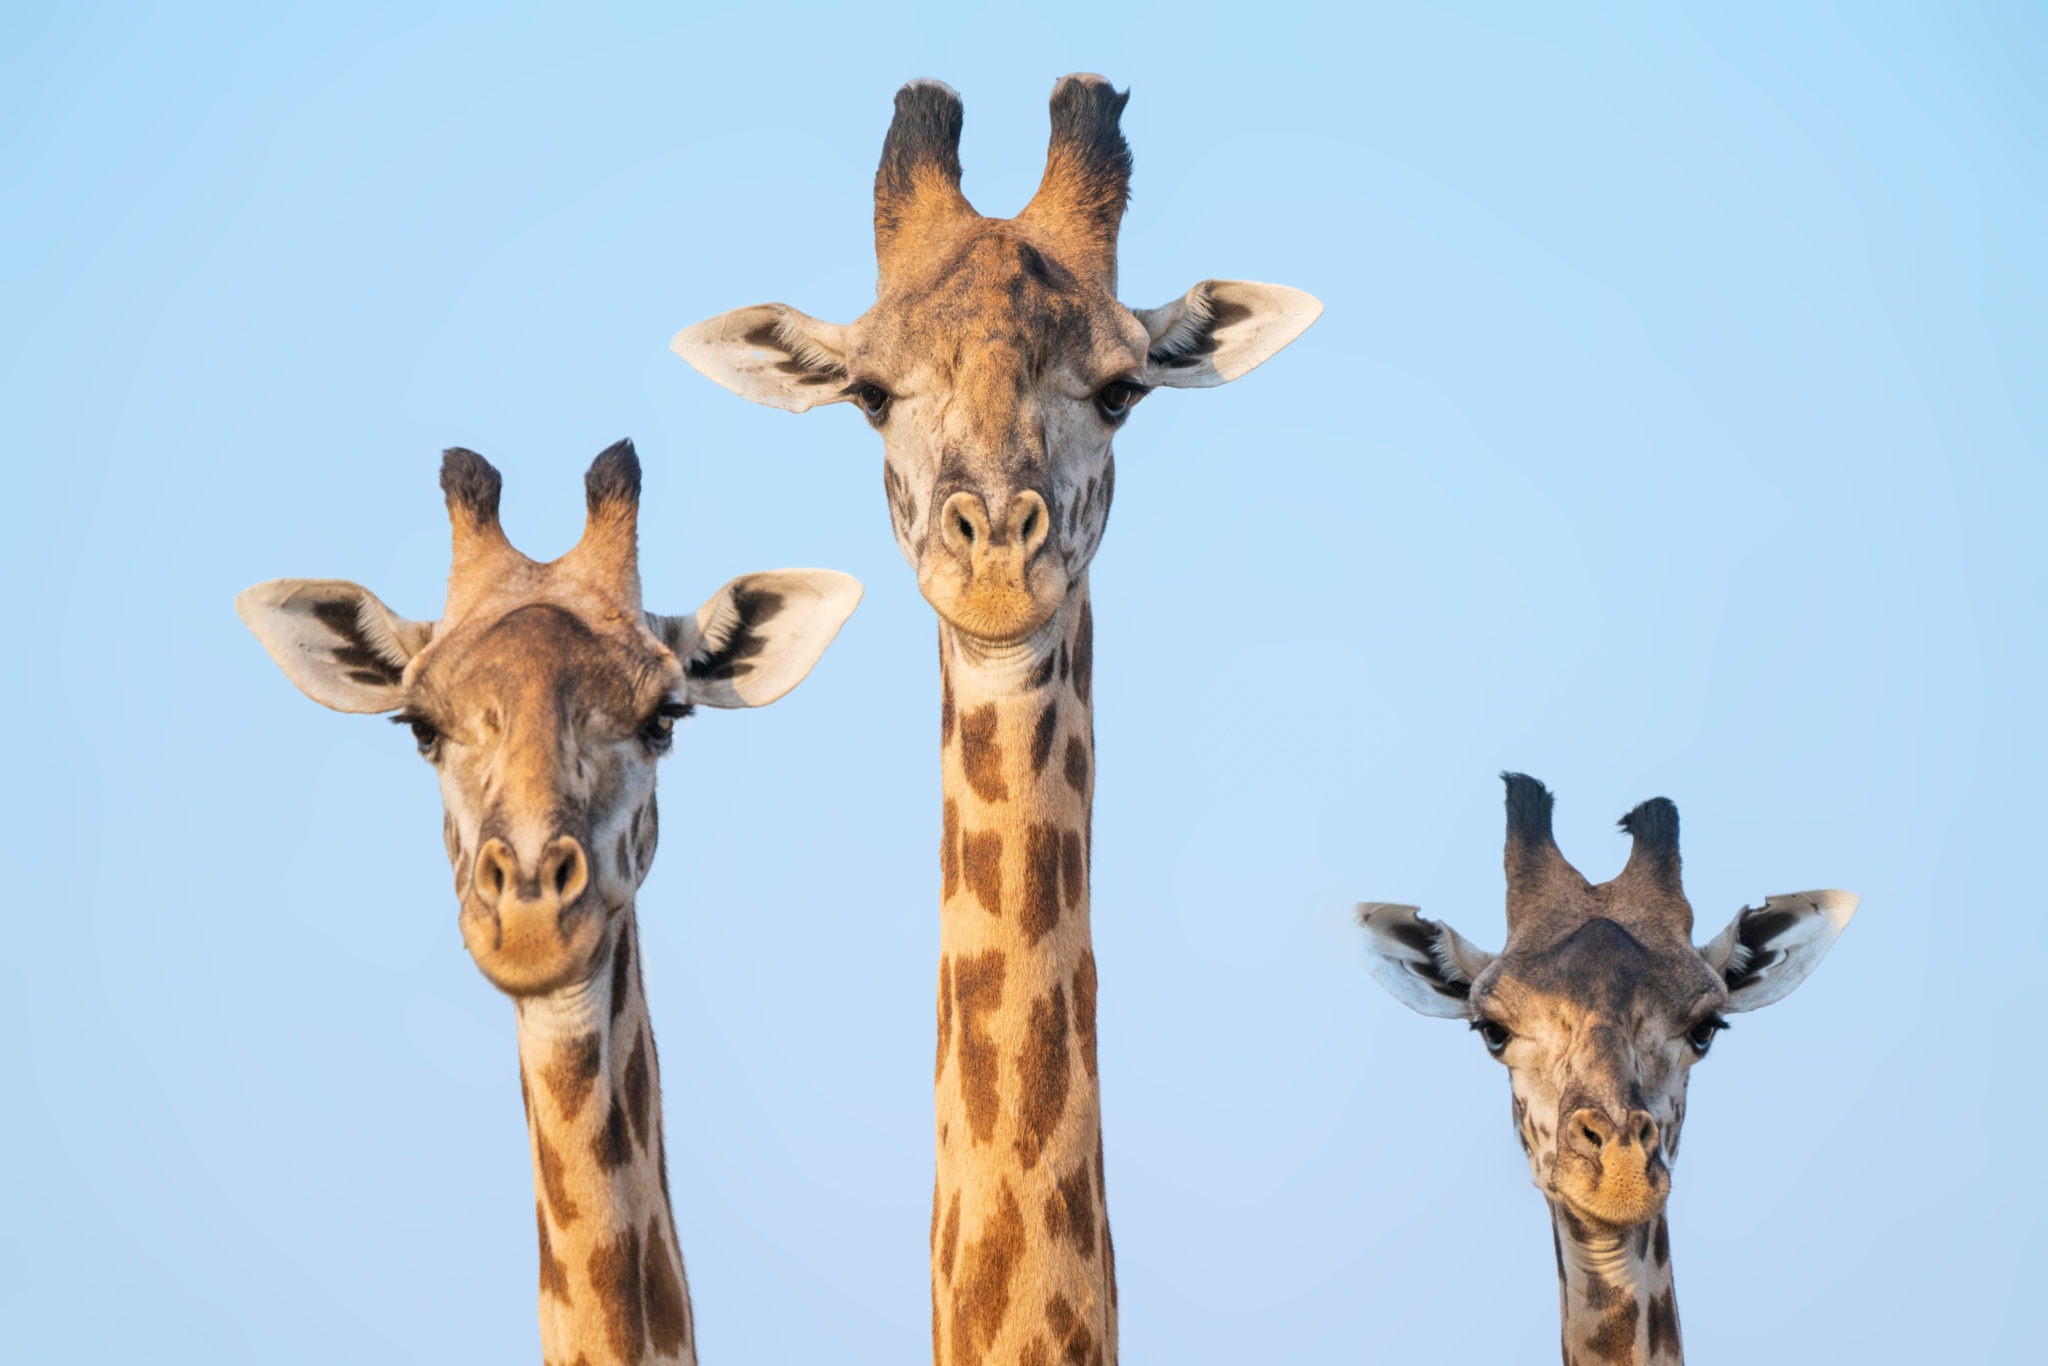 zambia giraffe frank photo safaris inspiration